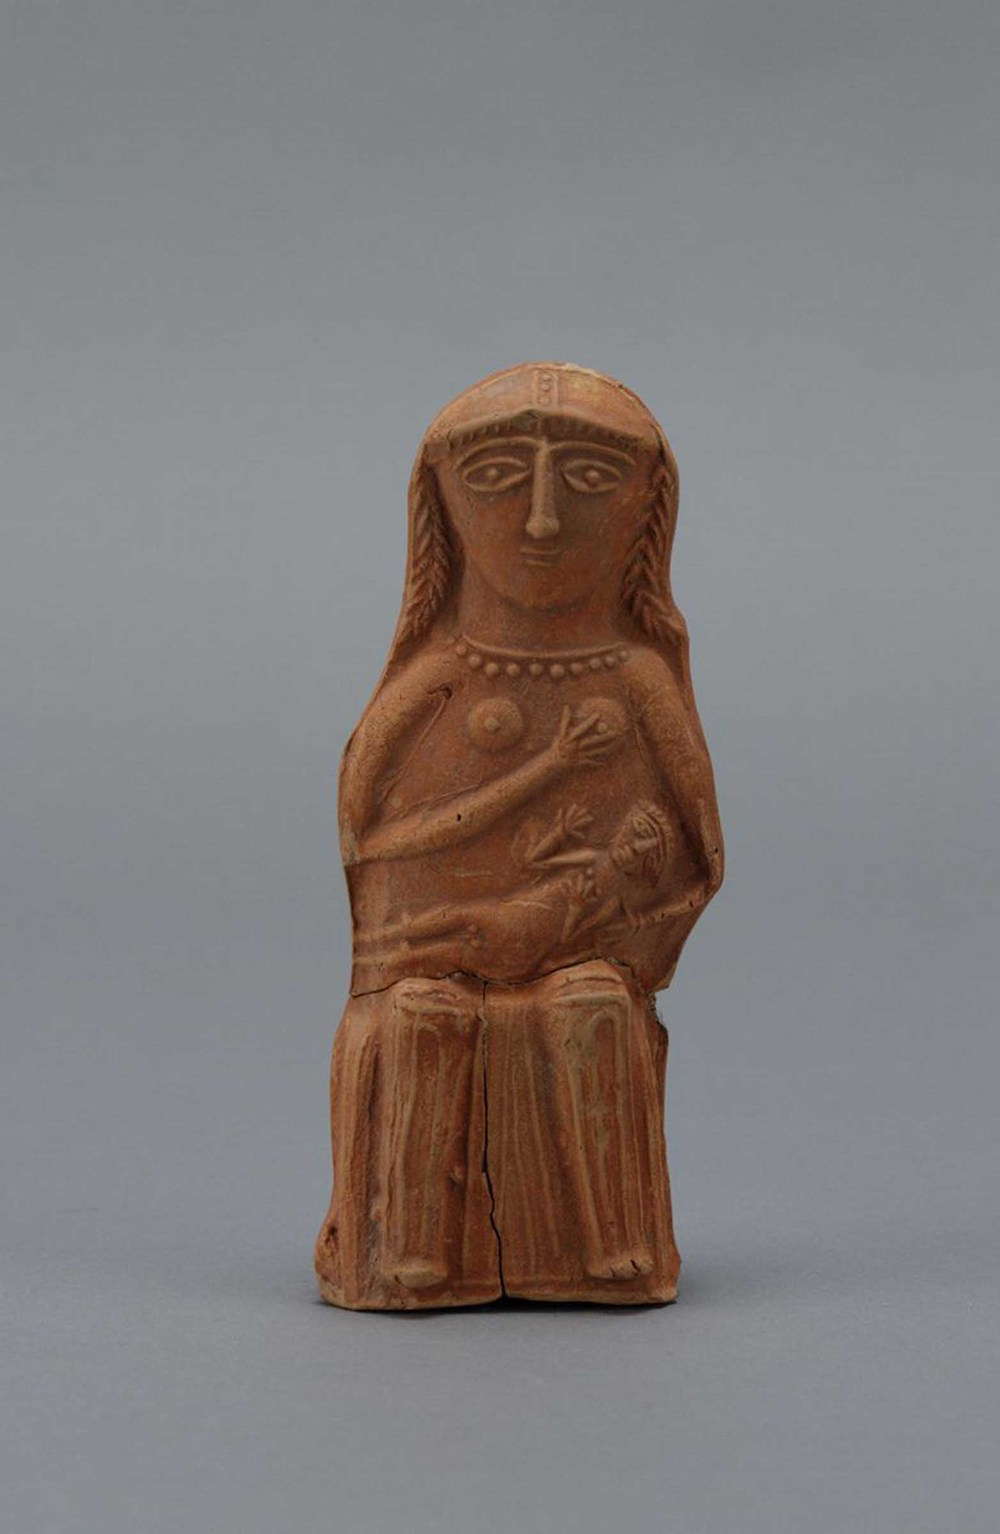 Figurine of Nysa